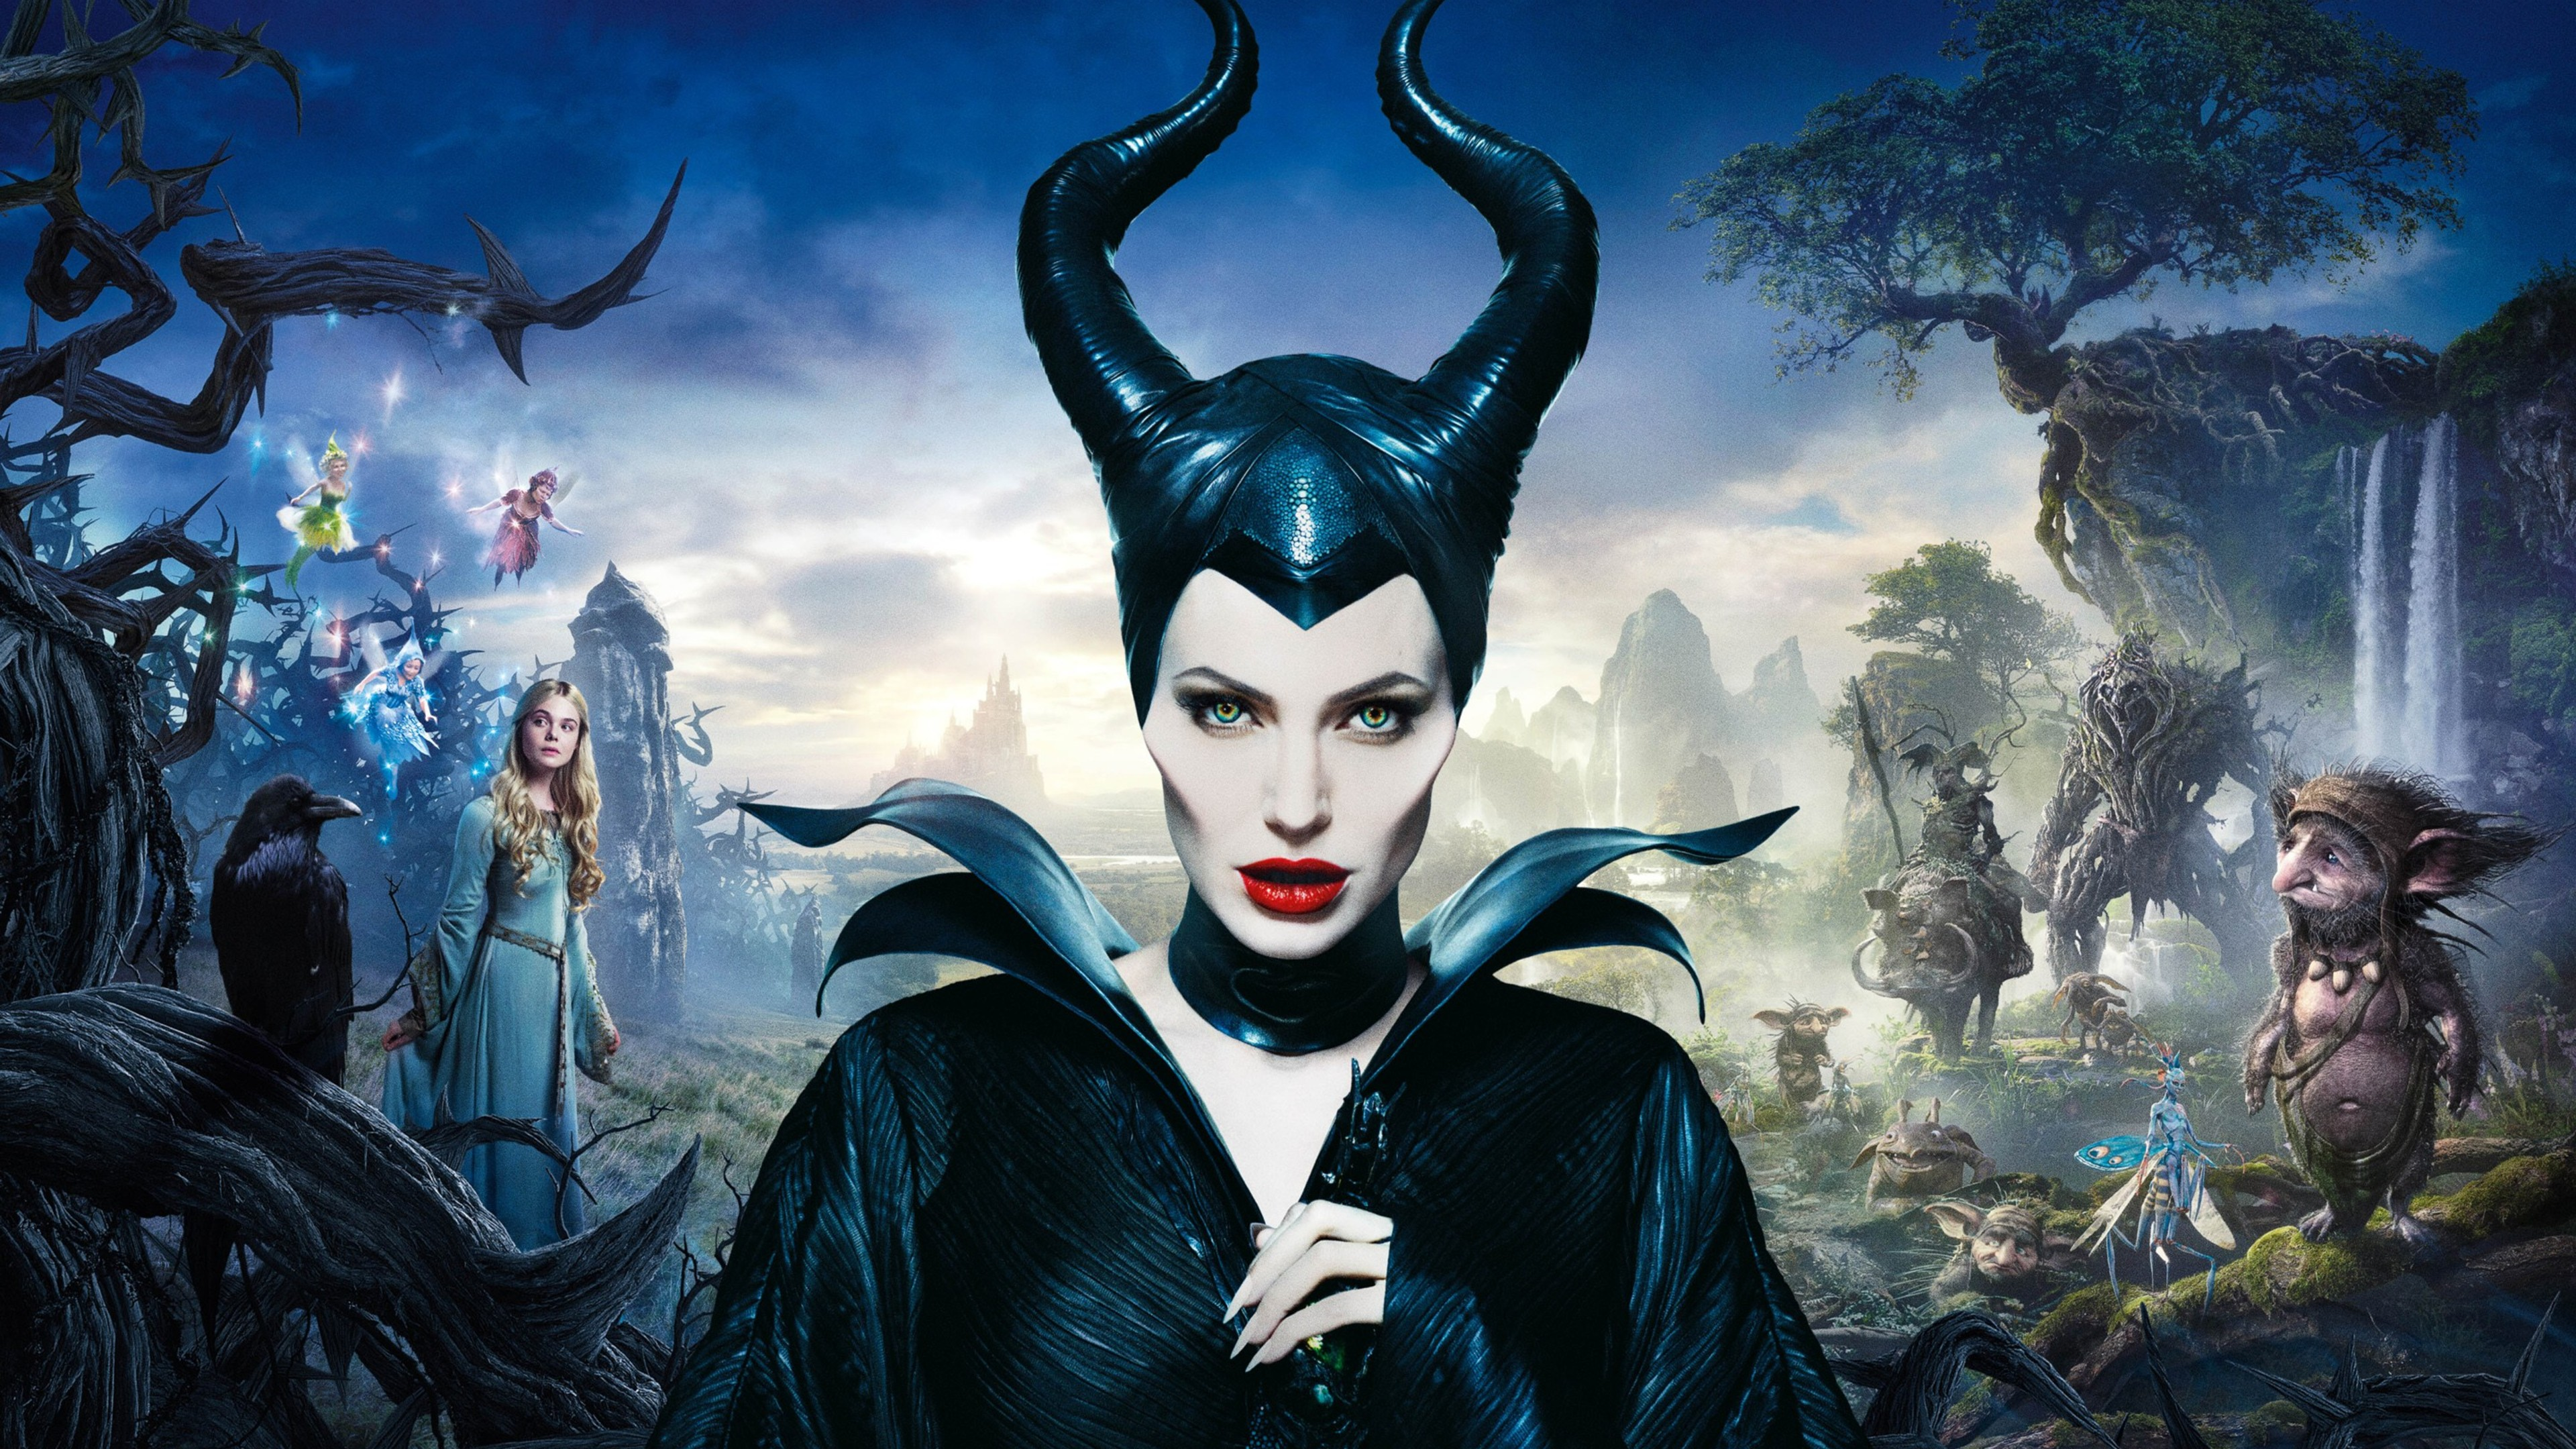 Maleficent Movie 2014 Hd Ipad Iphone Wallpapers: Angelina Jolie… Now, With Wings!